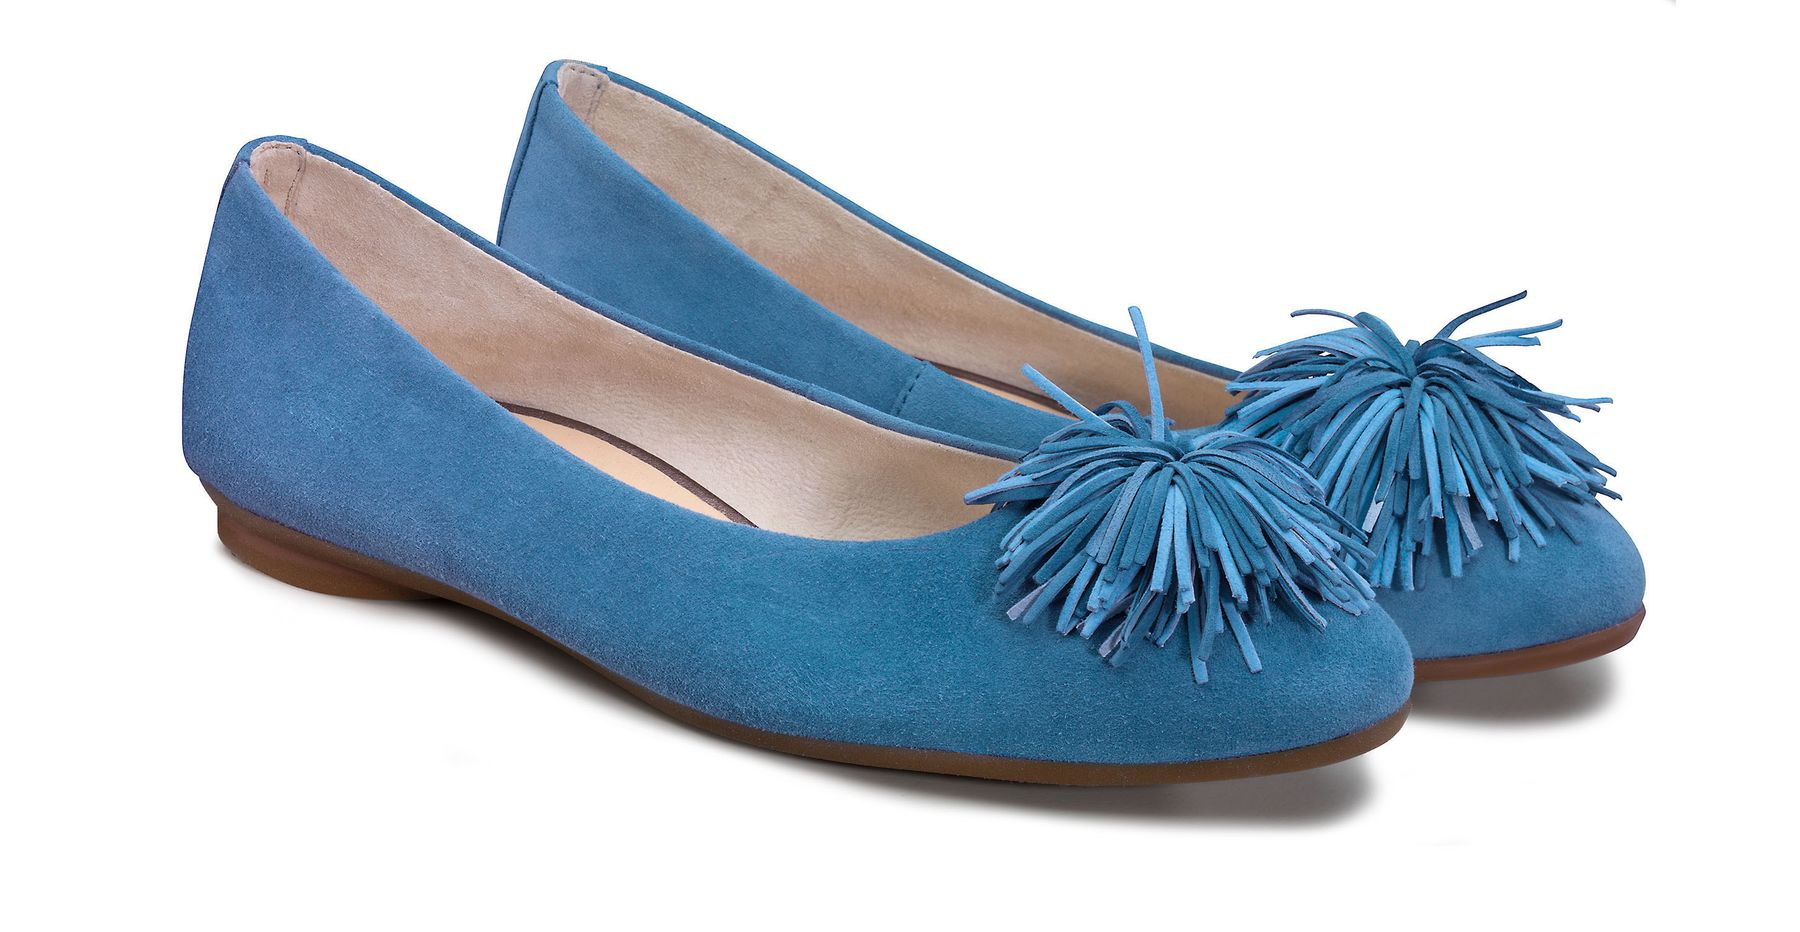 Soft ballerina shoes in blue with pom poms Paul Green